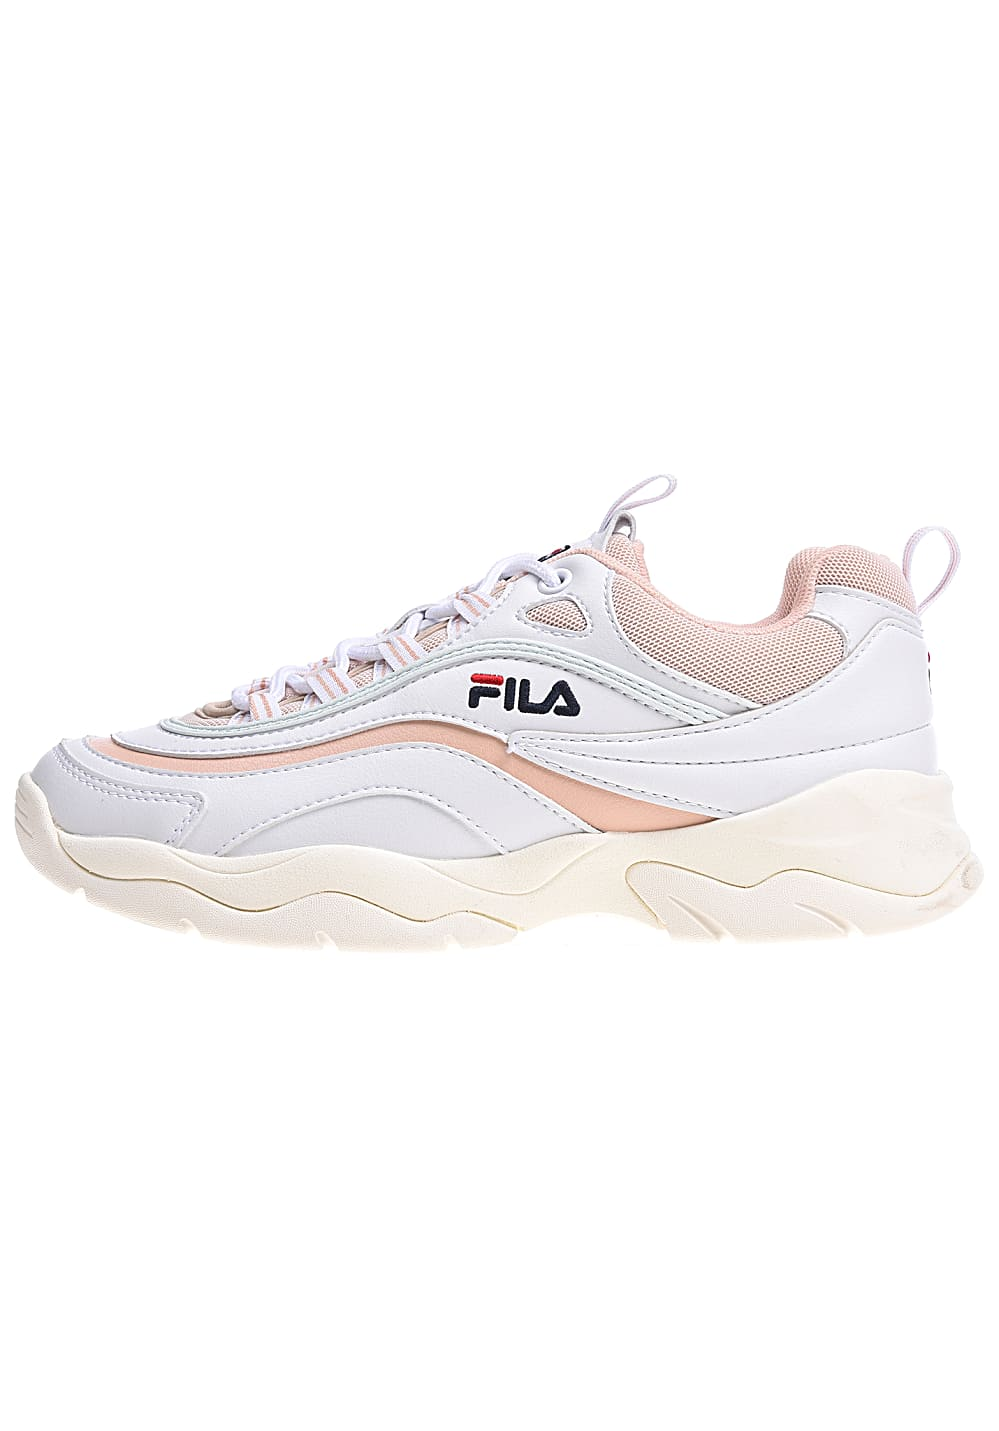 Fila Heritage Ray Low Sneakers for Women Pink Planet